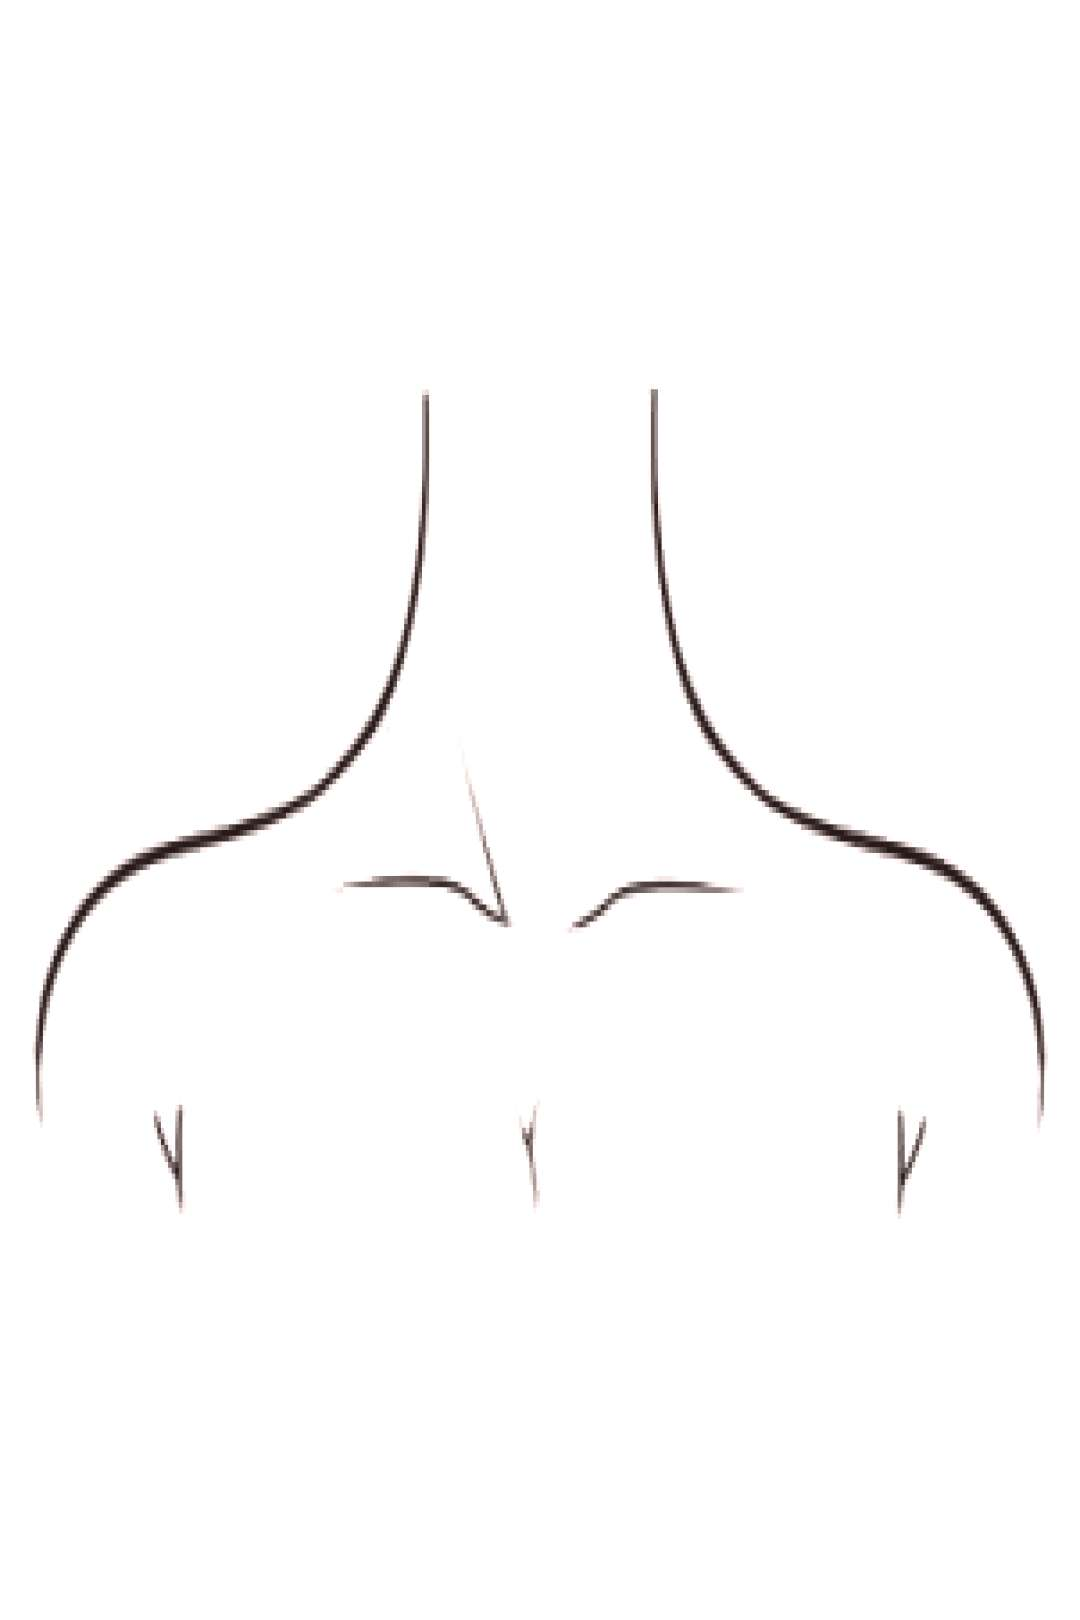 How to draw neck / collar bones - How to draw neck / collar bones - ... - How to draw neck / colla